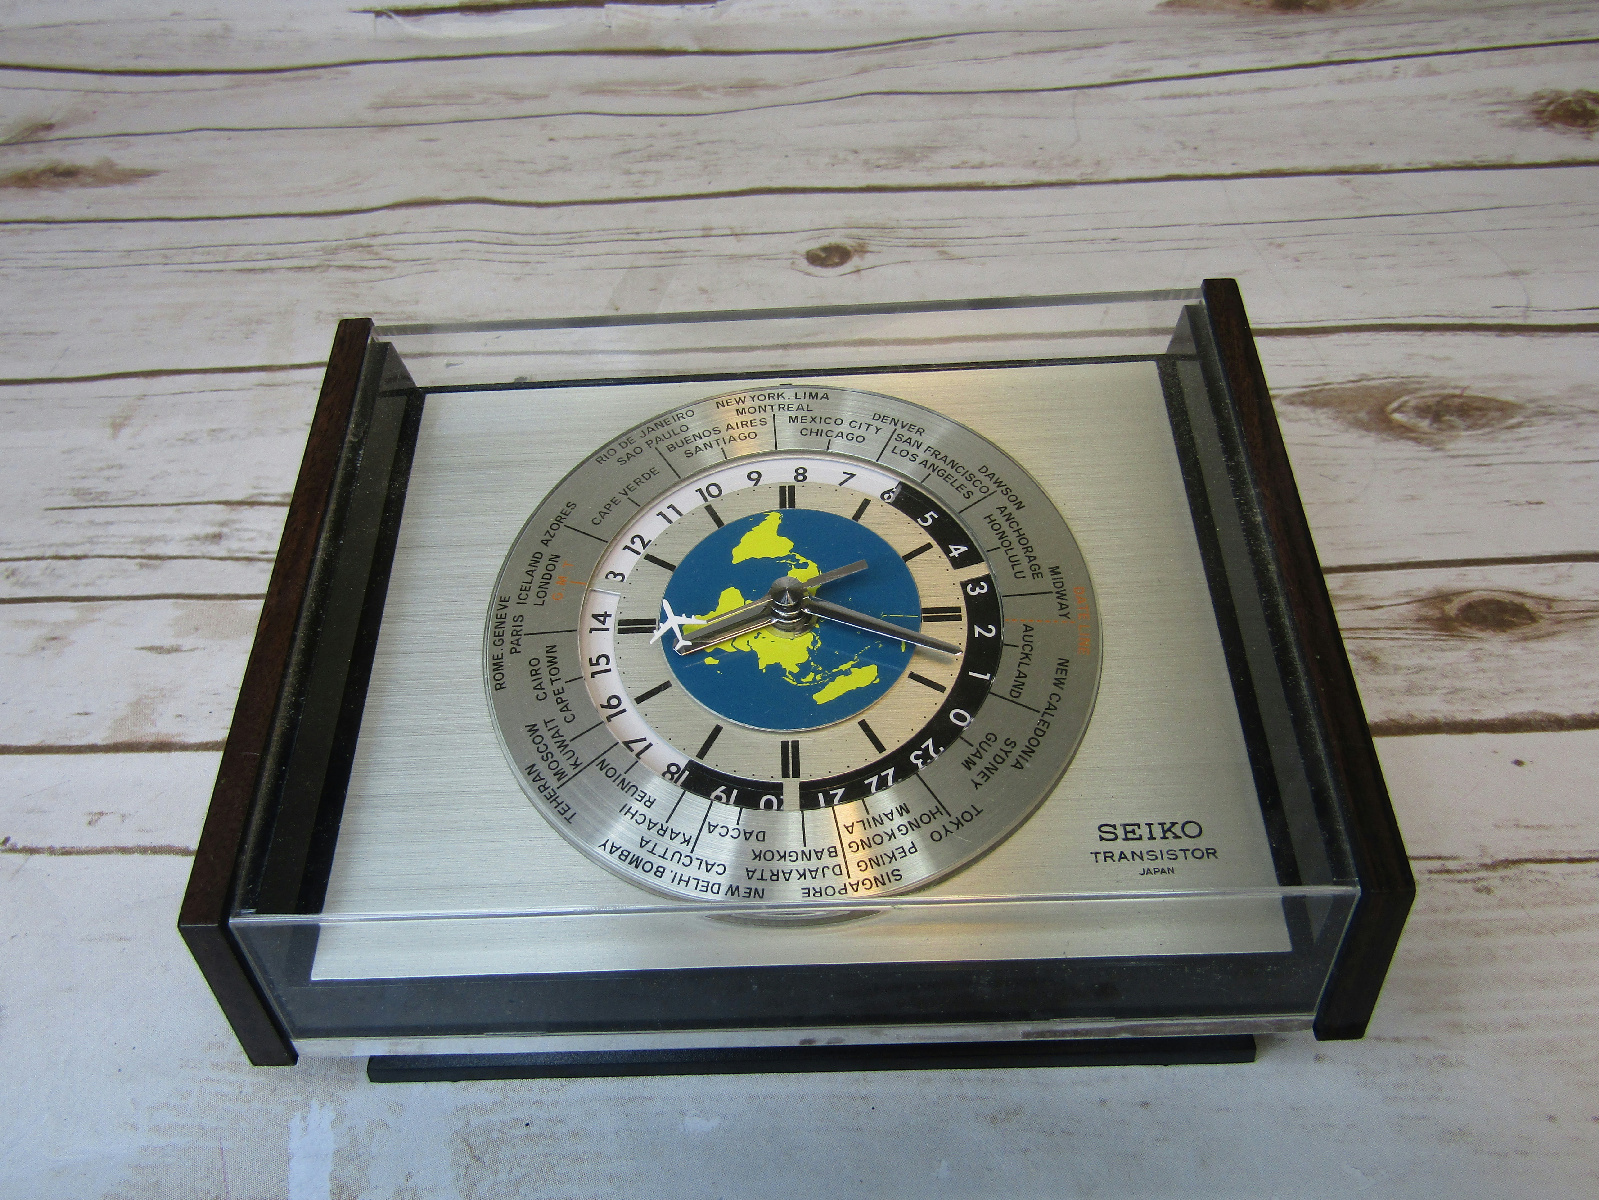 Seiko Transistor Airplane World Time Desk Clock Battery Powered Works